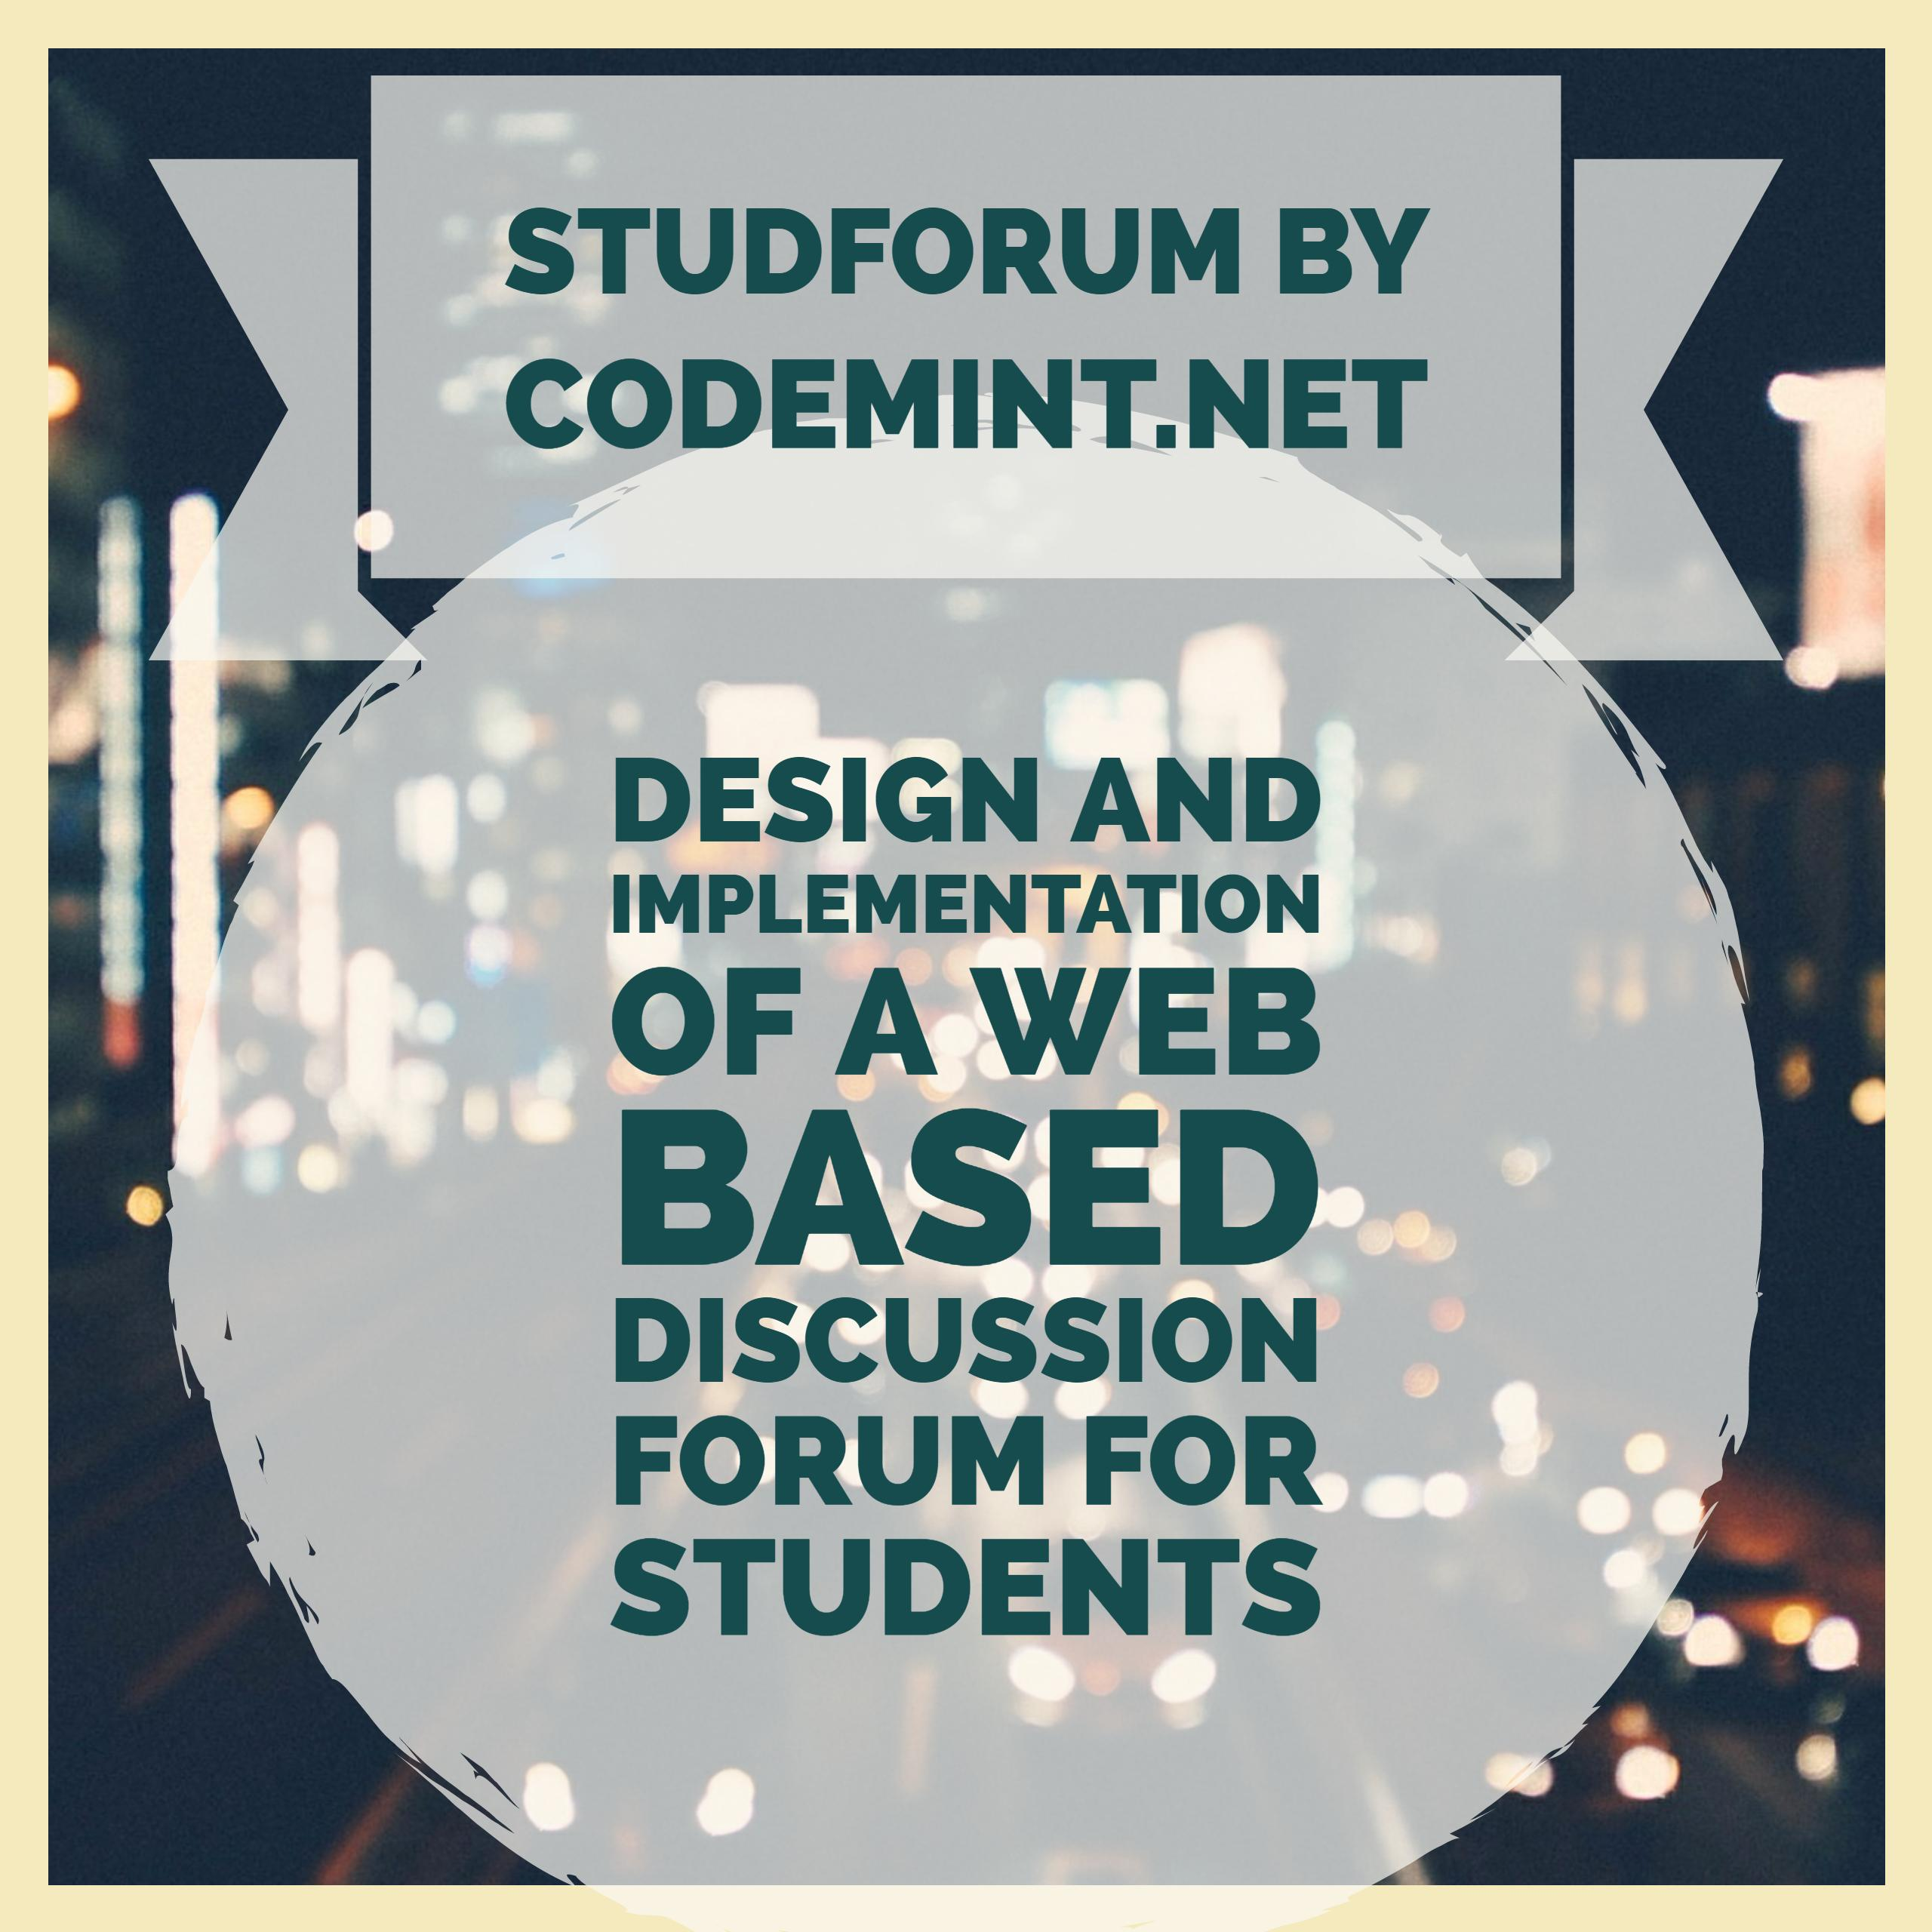 StudForum - Design and Implementation of a Web Based Discussion Forum For Students